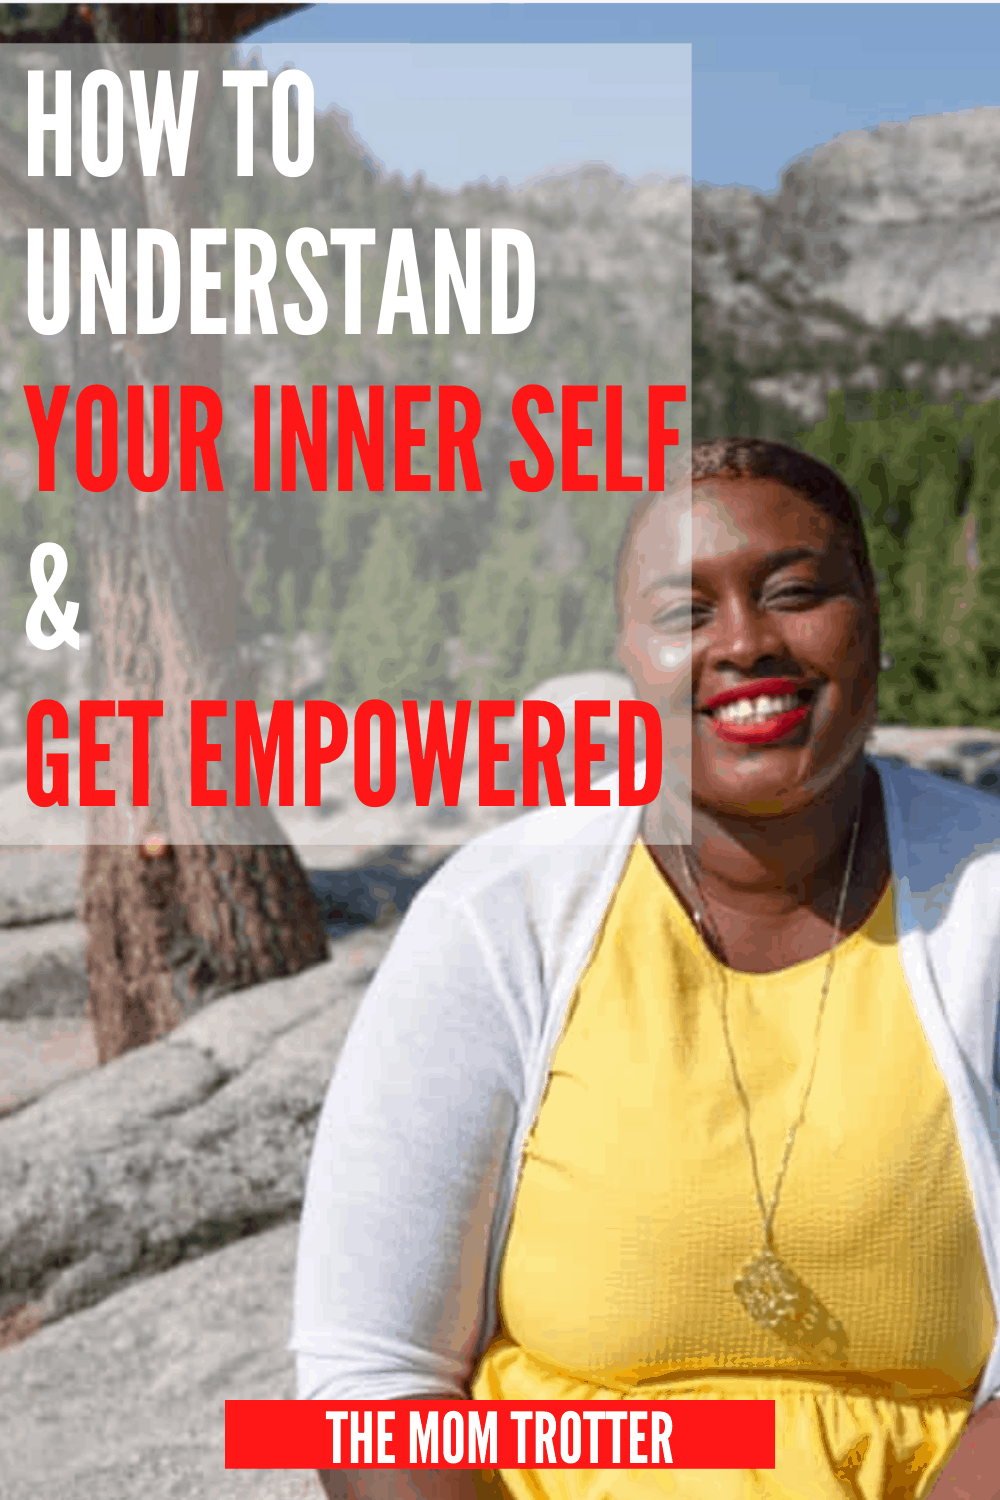 How to understand your inner self and get empowered